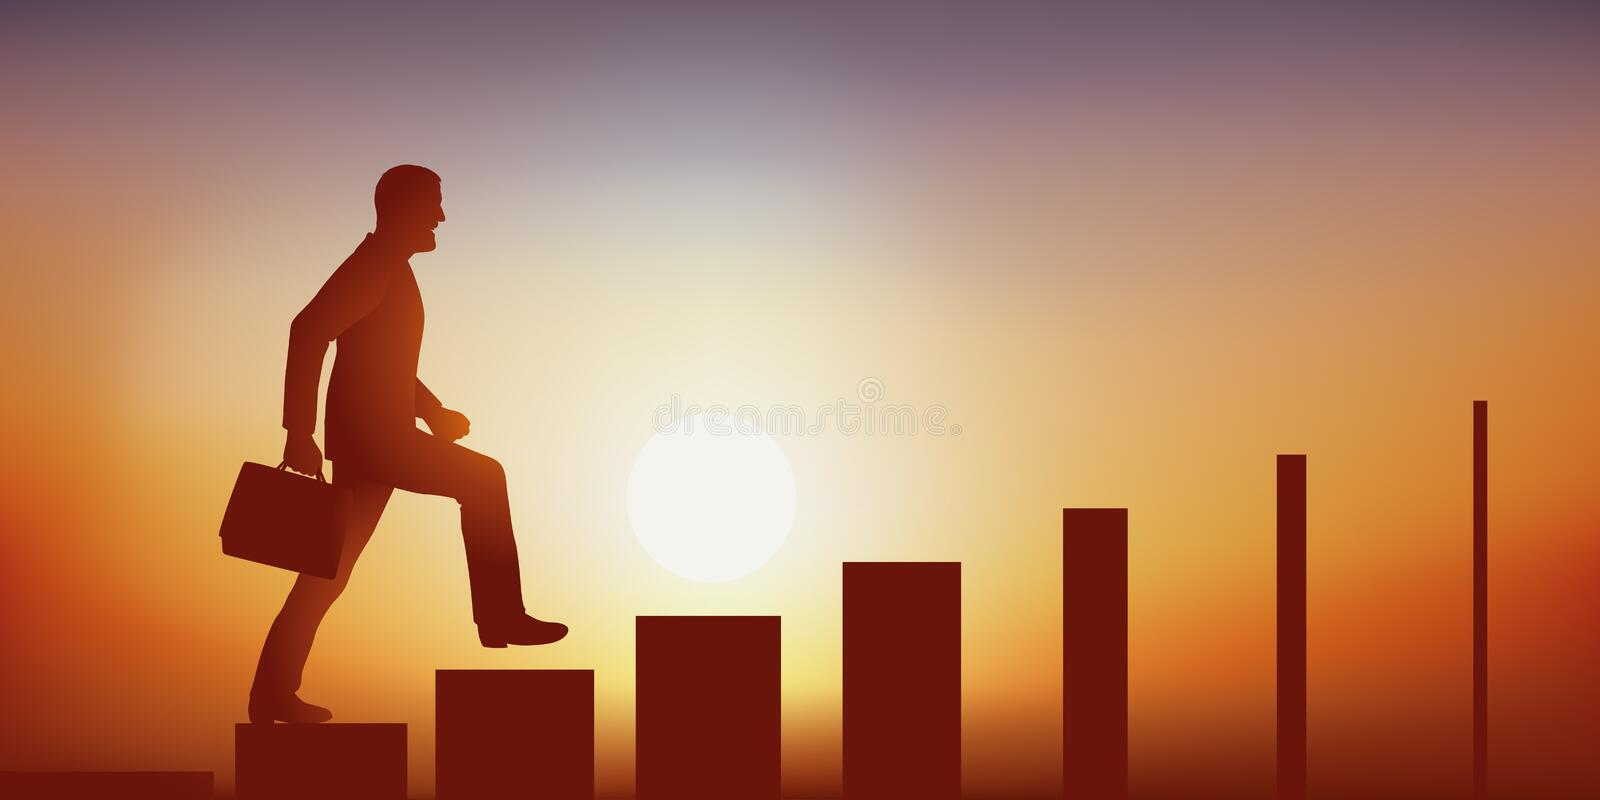 Symbol of the difficulty of accessing leadership, with a man symbolically climbing stairs whose steps are narrowing. Concept of the difficulty to climb in the royalty free illustration